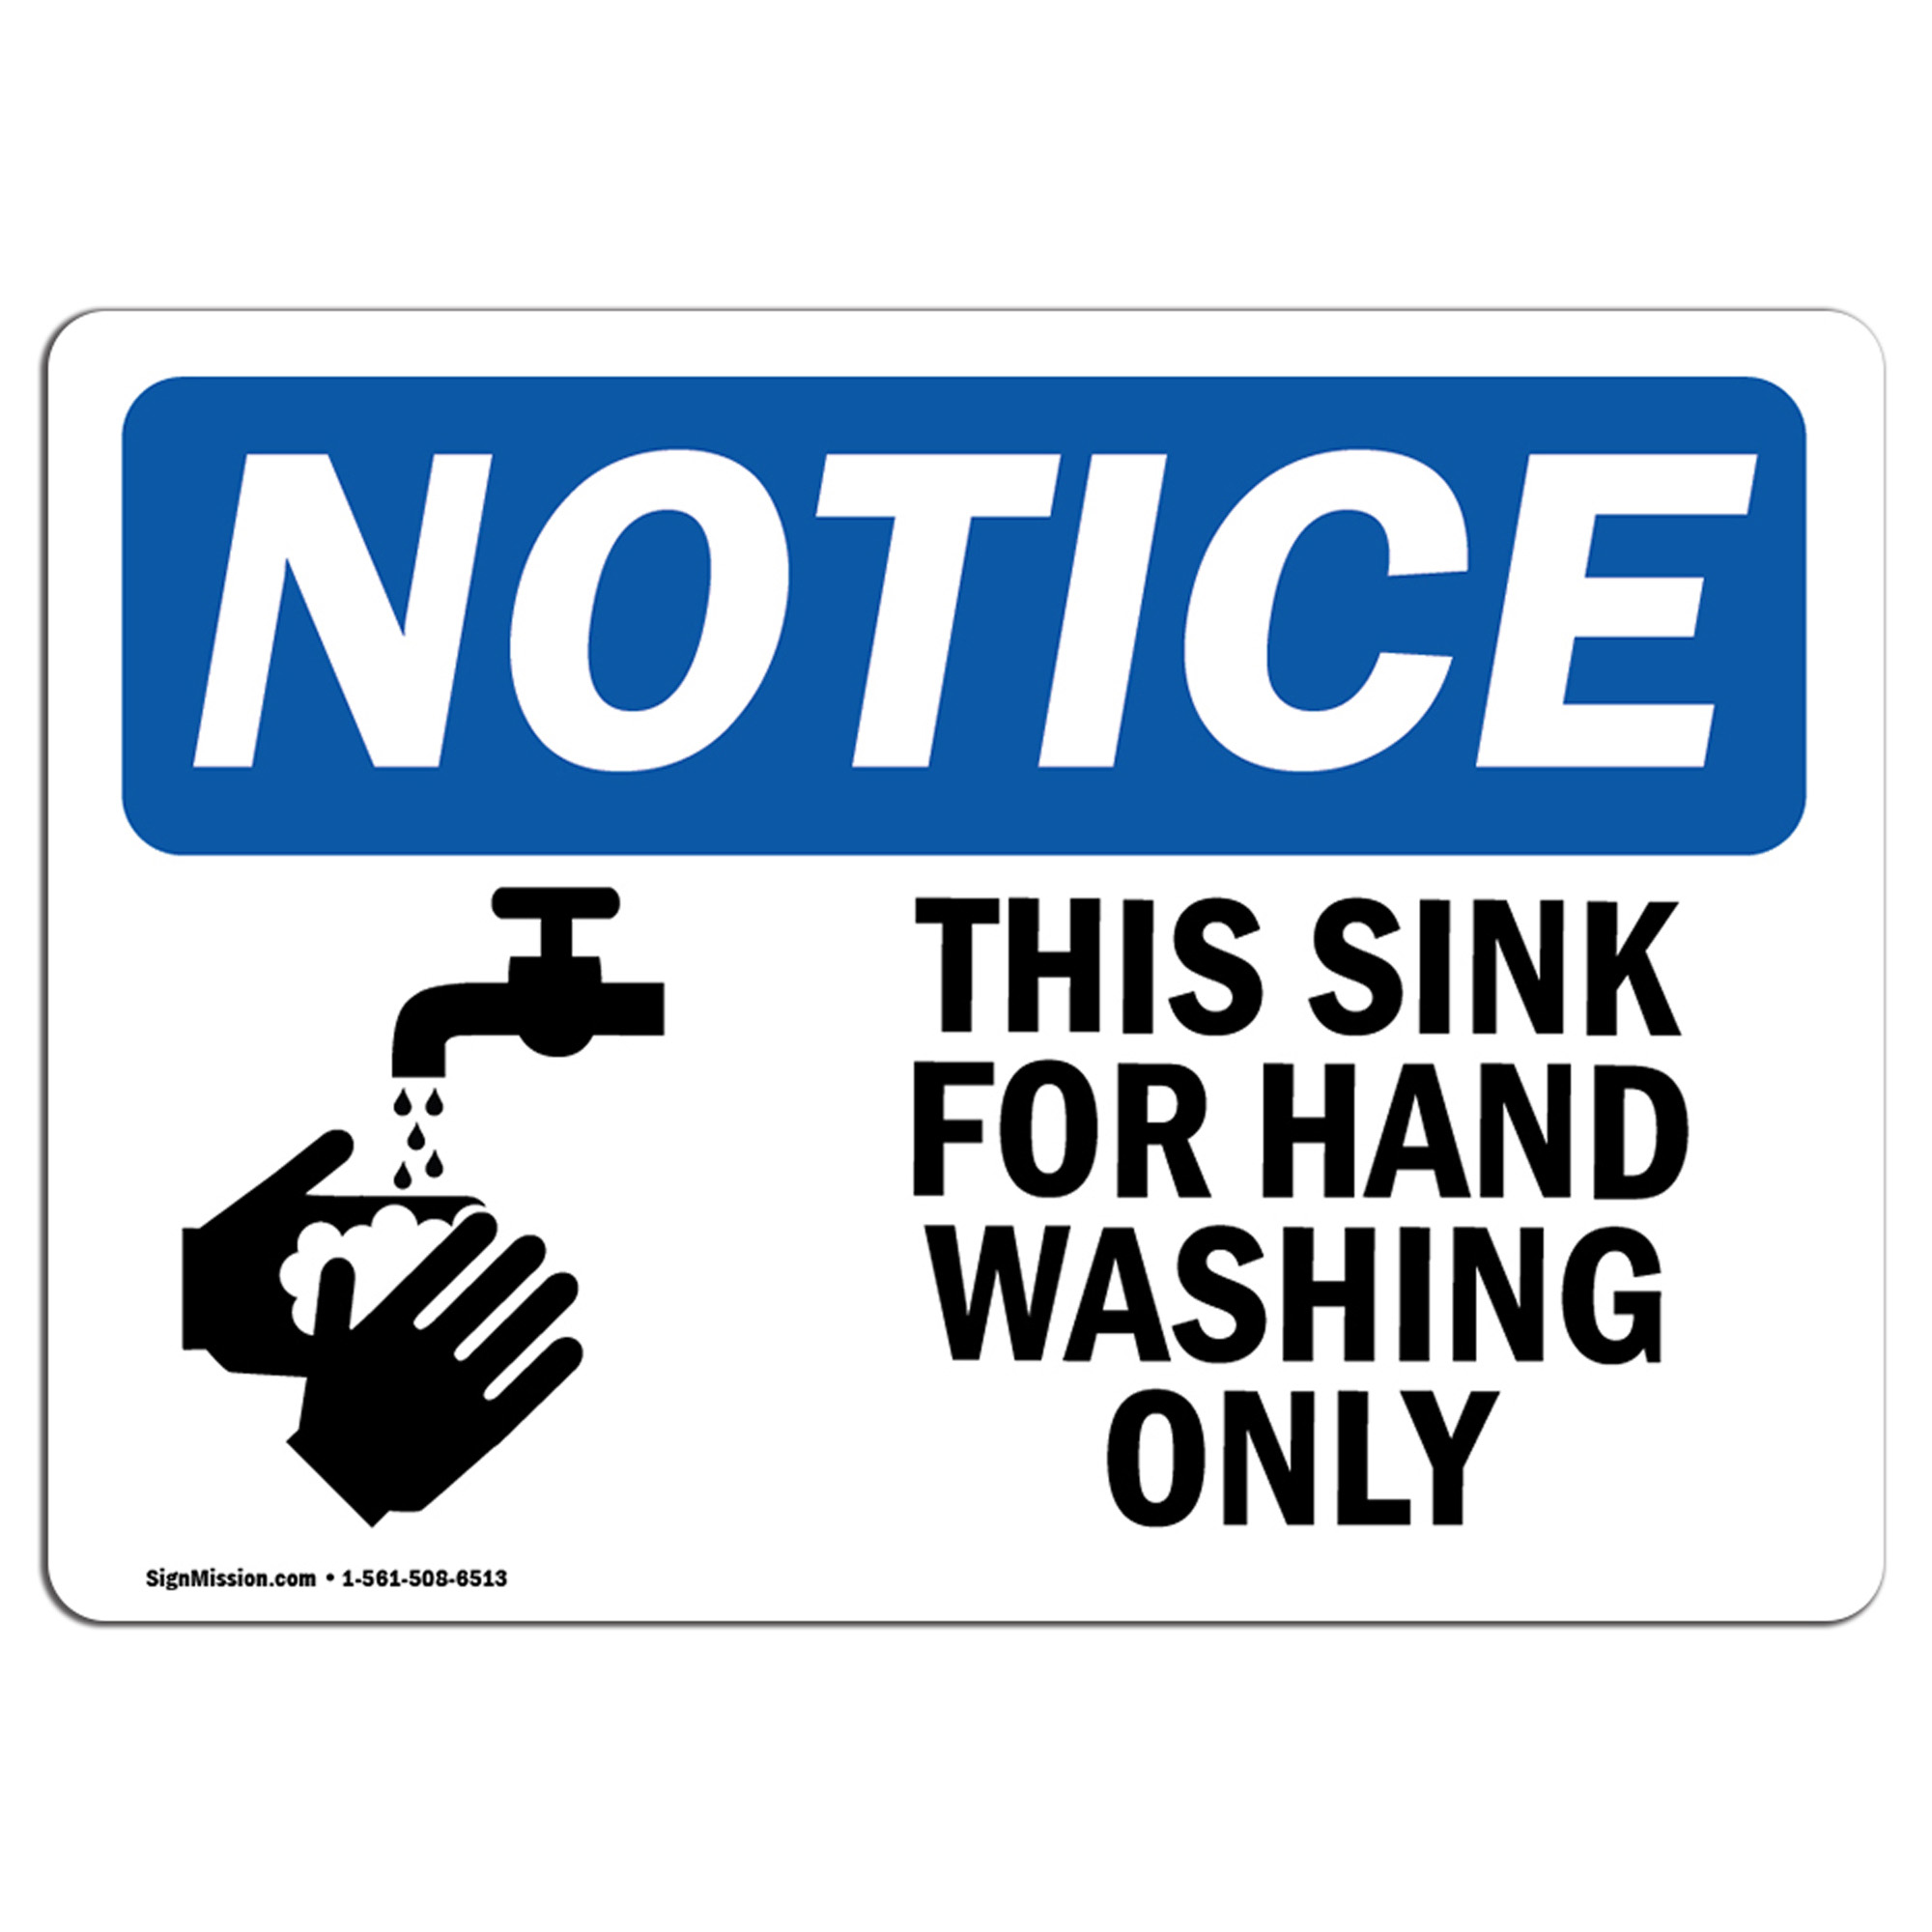 osha notice notice this sink for hand washing only with symbol sign label